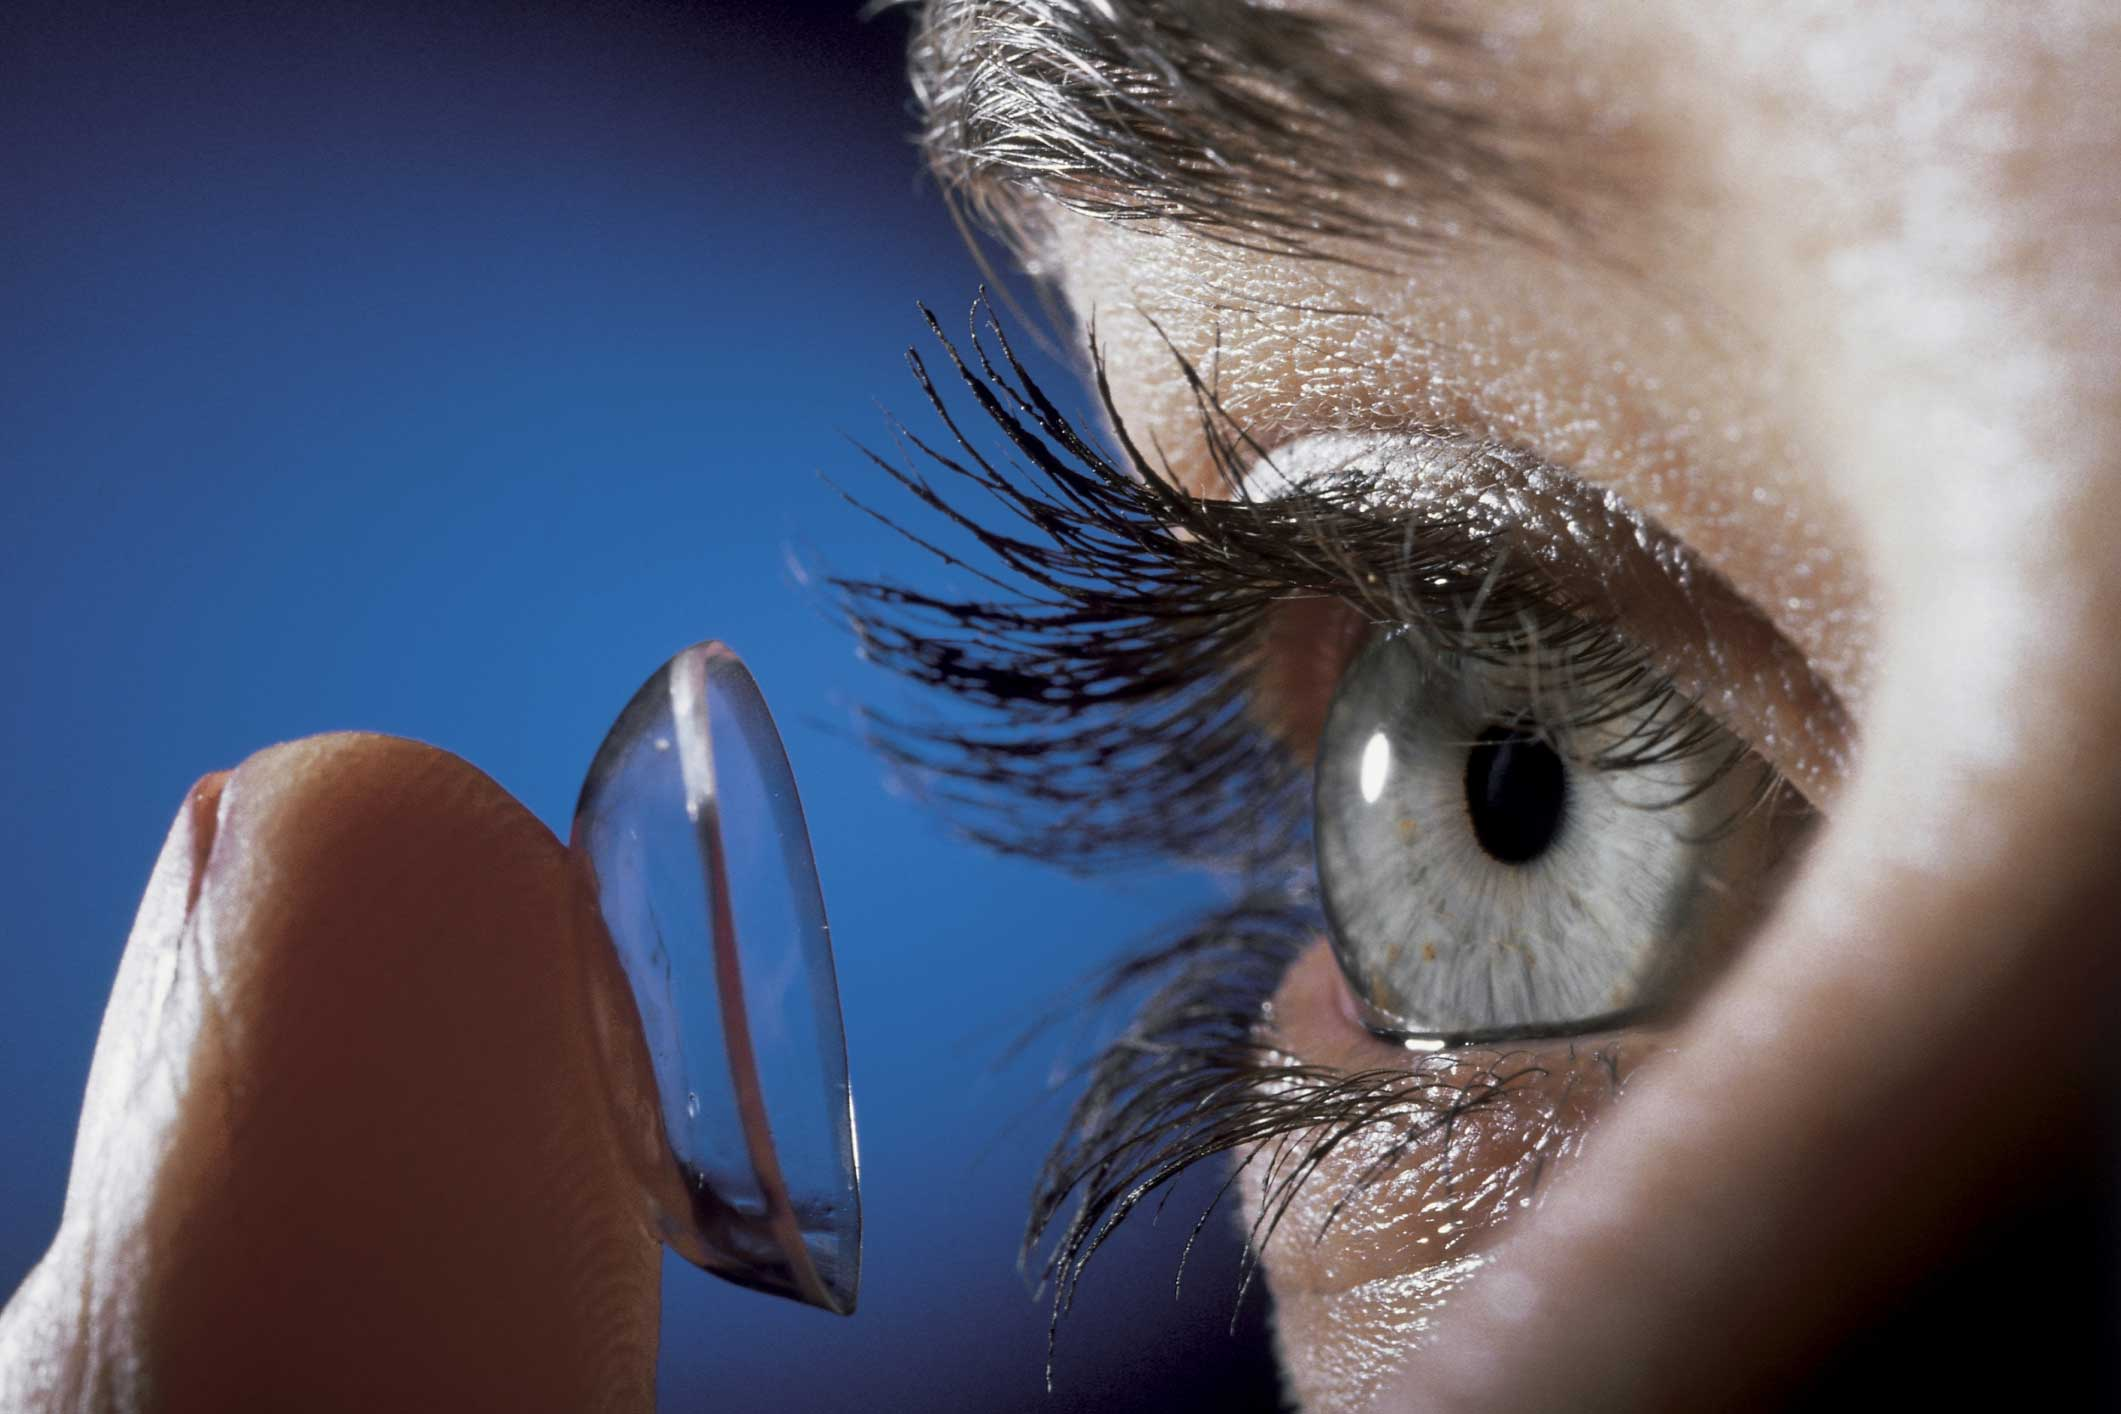 an overview of the contact lens complications and the modern contact lens care systems A good history including lens cleaning method is important in diagnosing a contact lens complication thiomersal was responsible for about 10% of problems related to contact lenses you can refit into daily disposables to minimize the risk of solution reactions and other compounds.